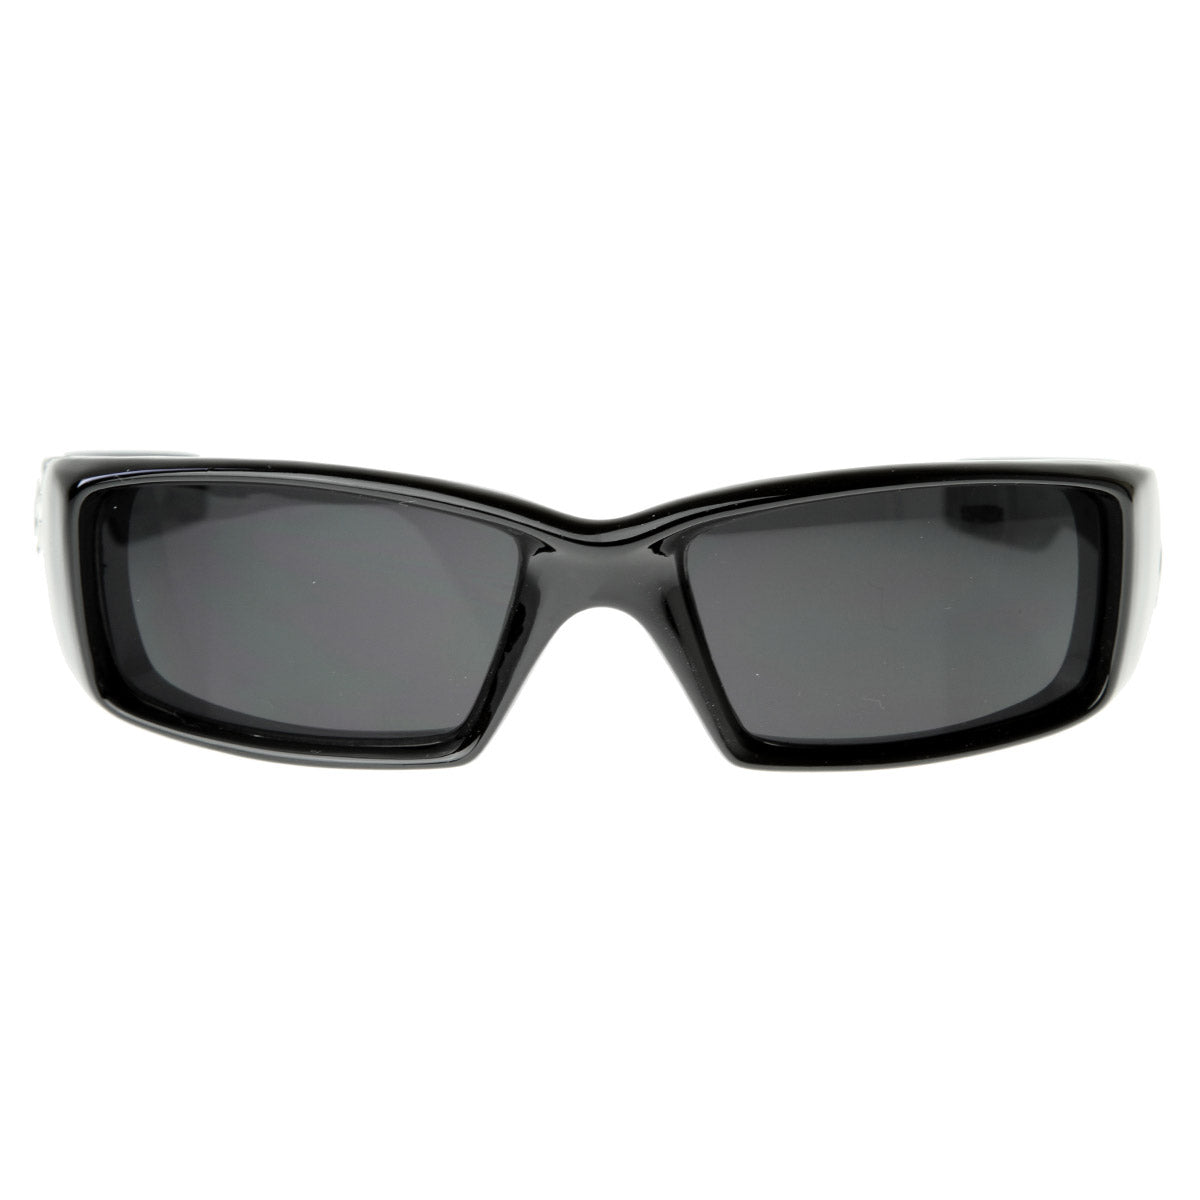 OG Gangsta Shades LOCs Hardcore Square Sunglasses